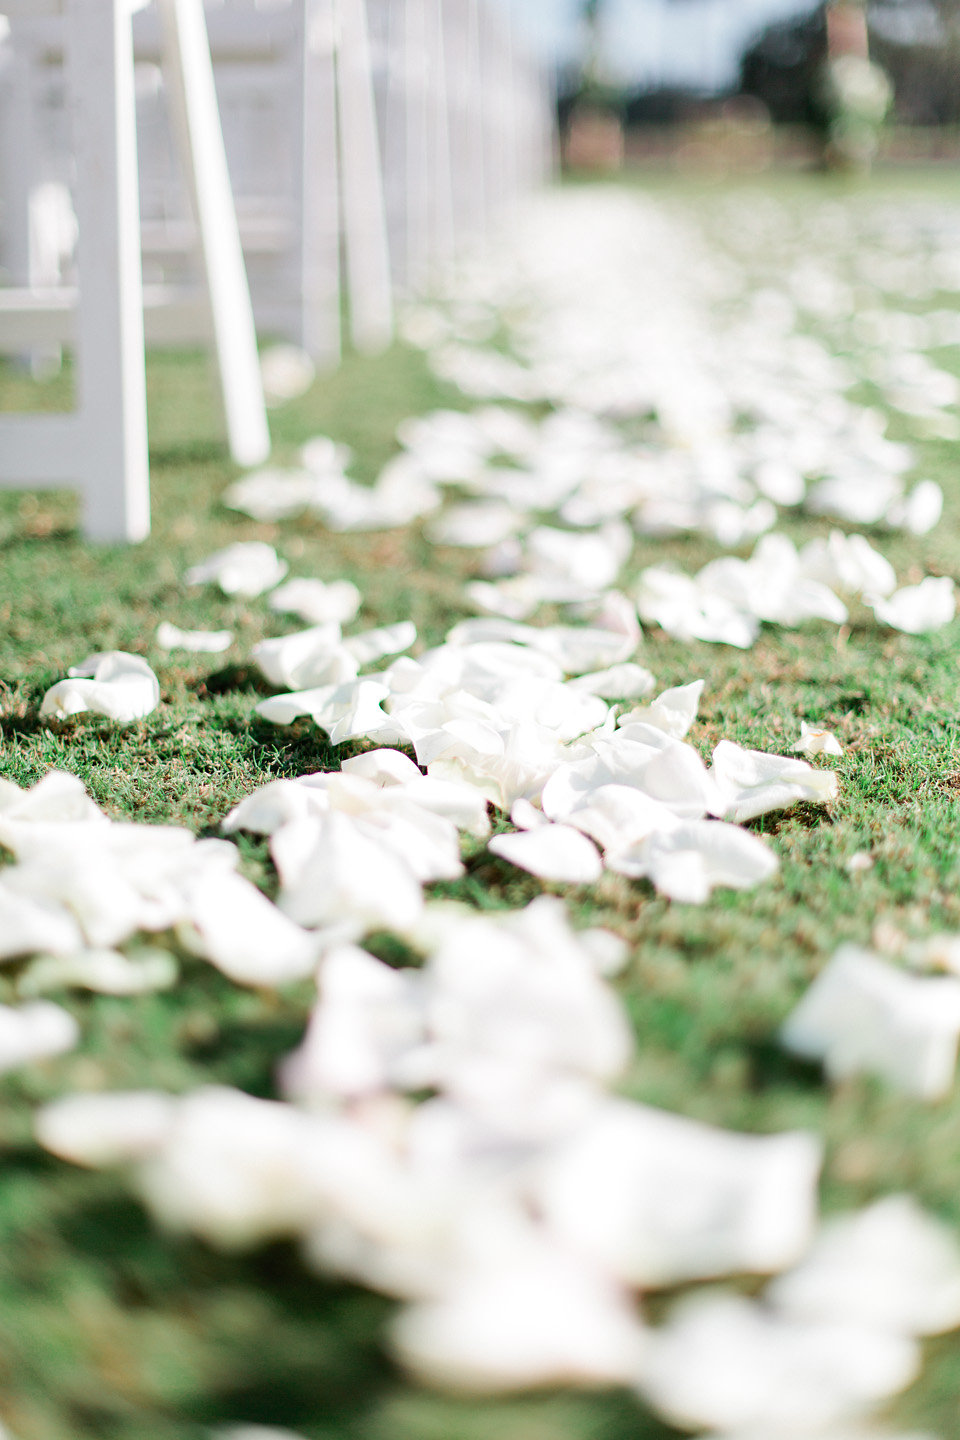 Rose petals down the aisle for the wedding ceremony